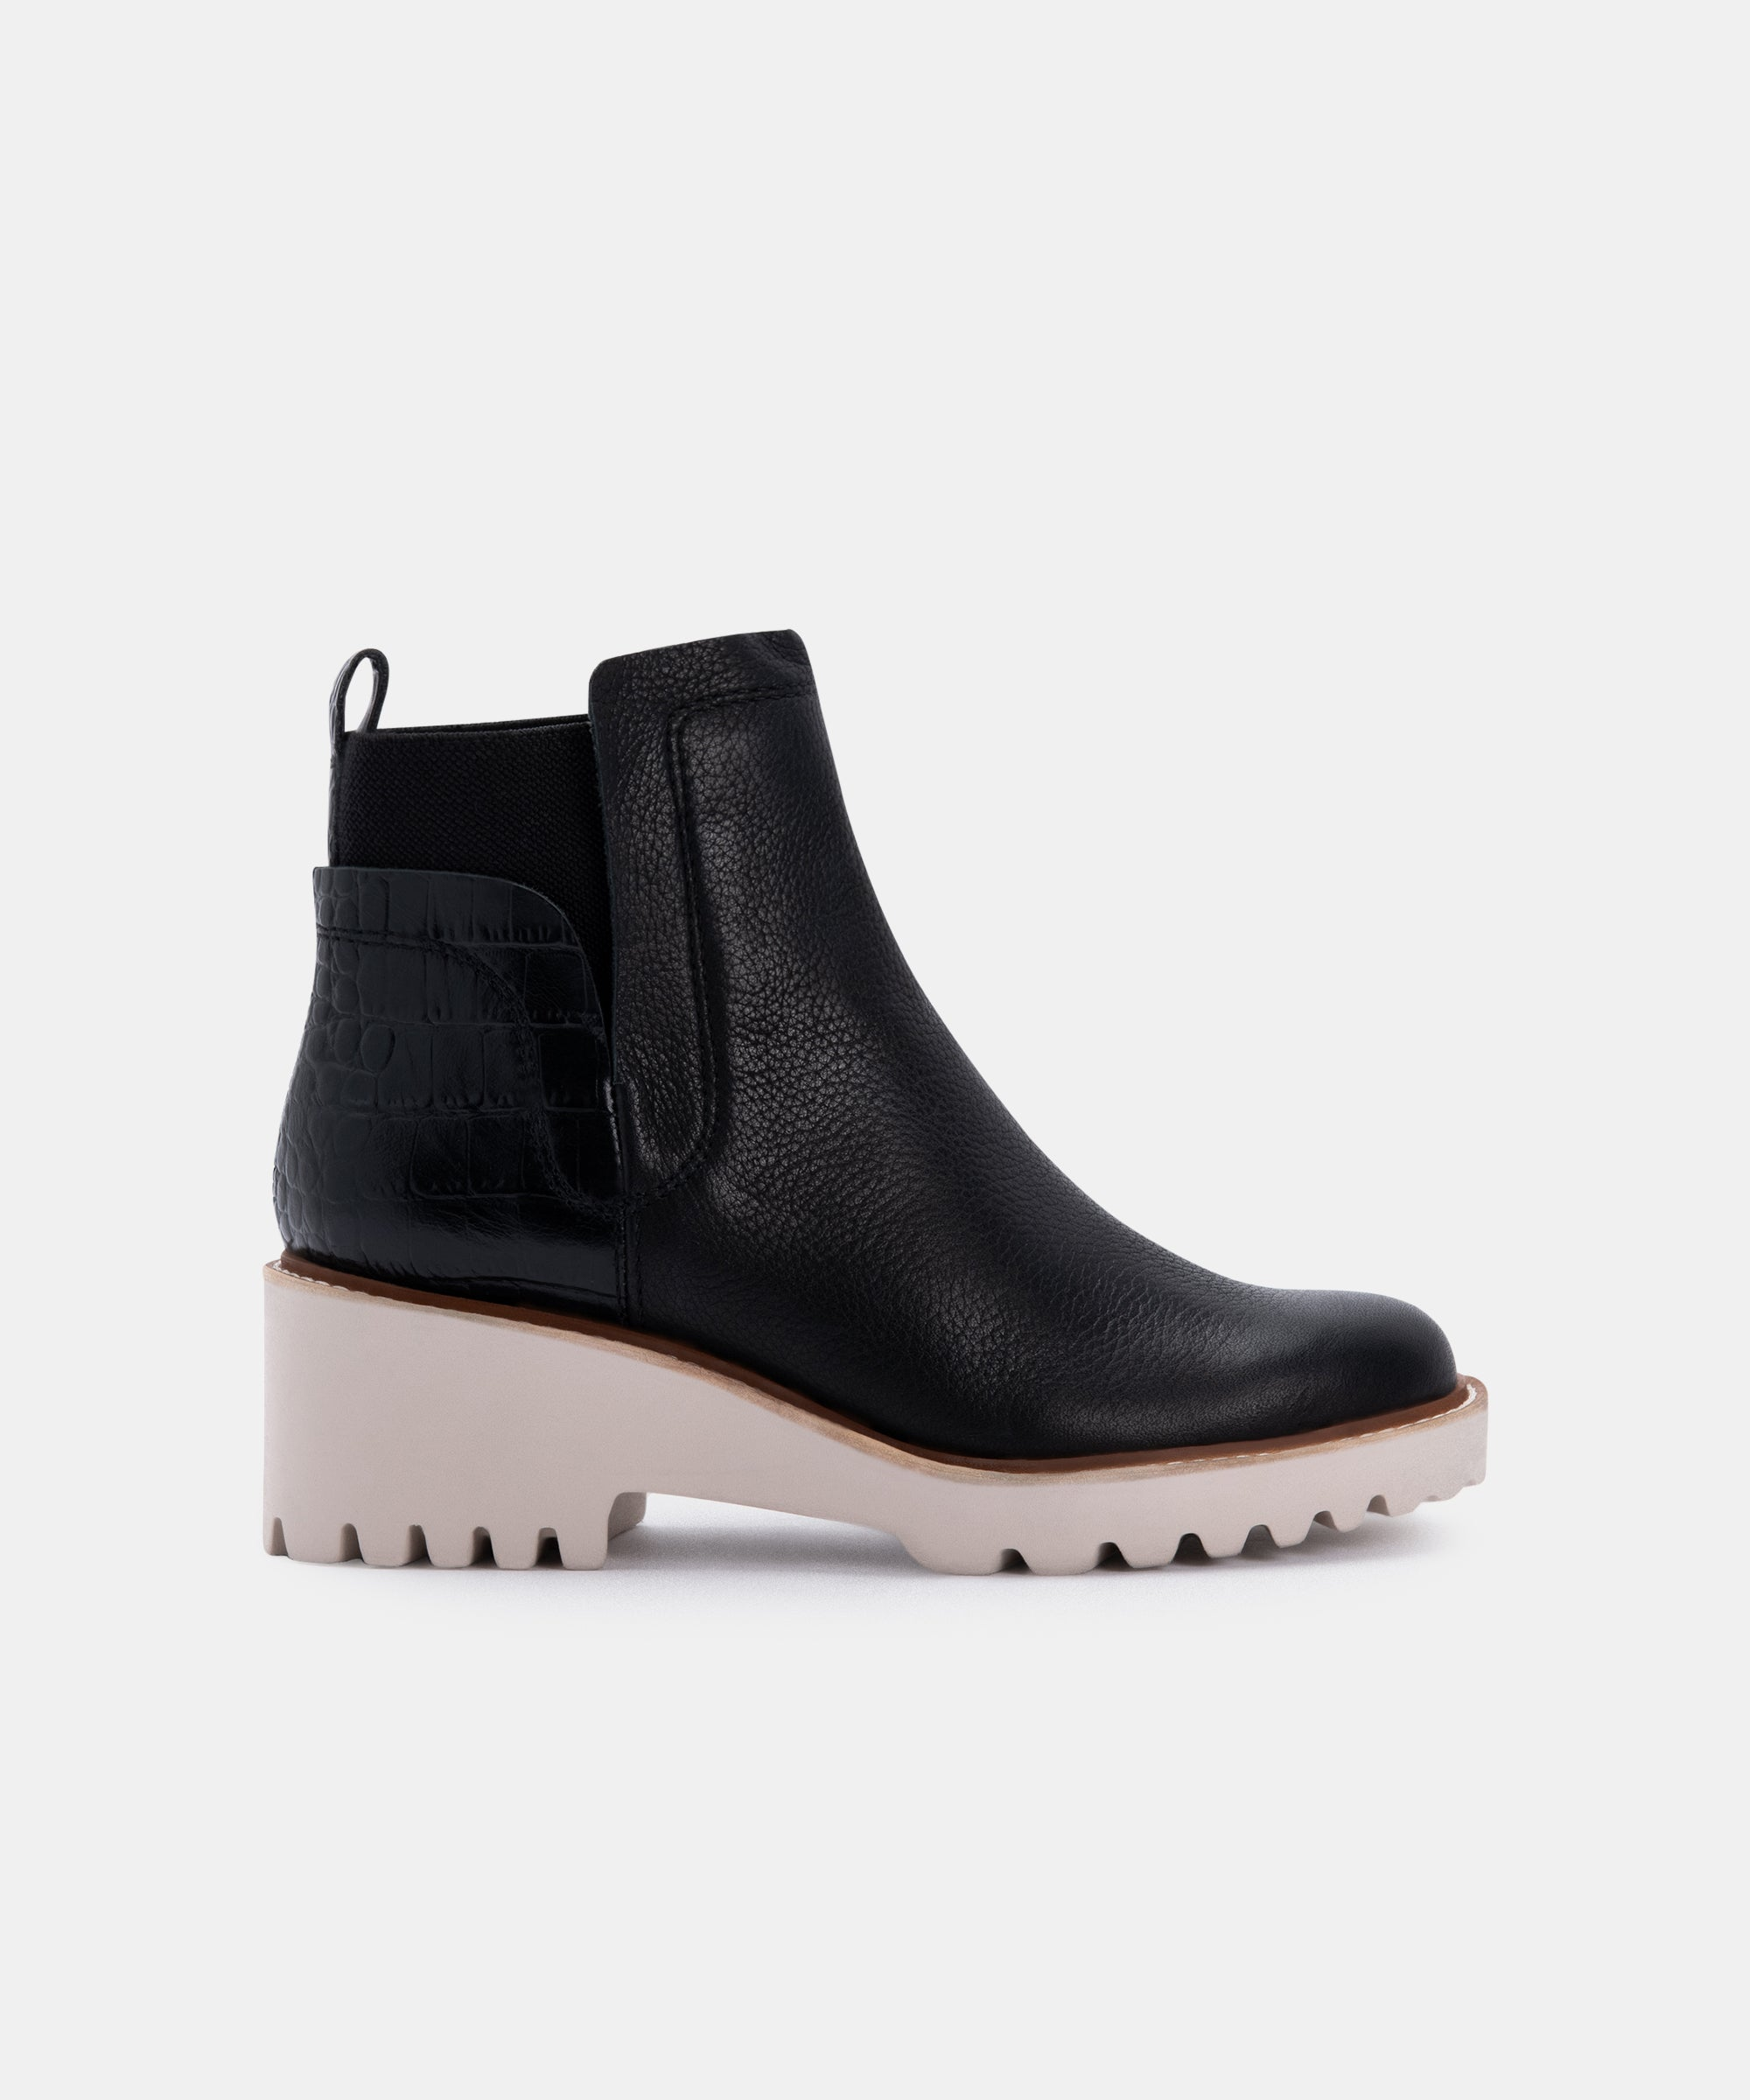 HUEY BOOTIES IN BLACK